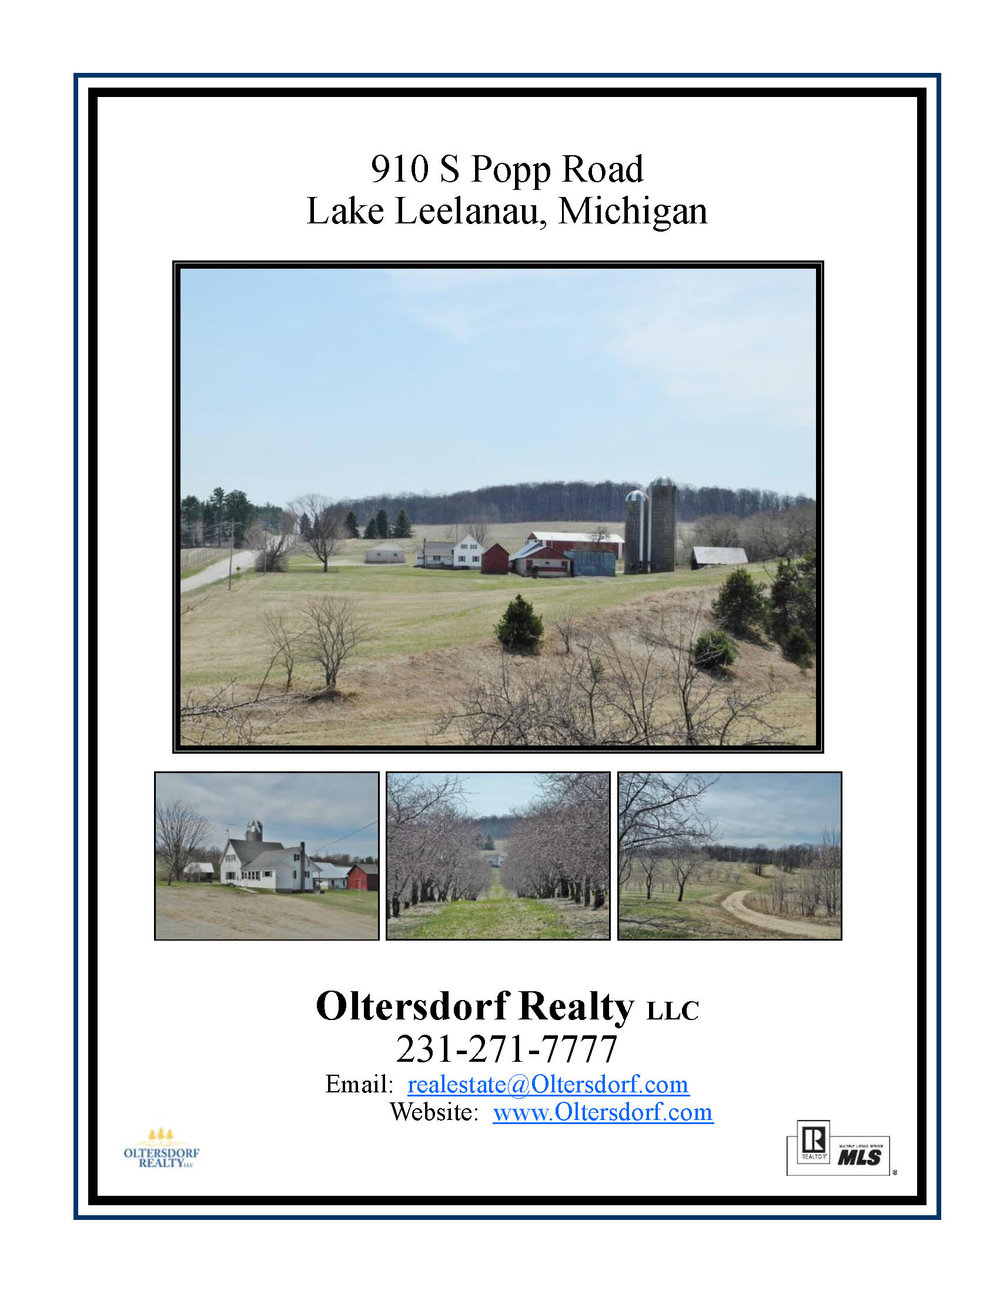 910 S Popp Road, Lake Leelanau - For sale by Oltersdorf Realty LLC (photo pages)_Page_01.jpg